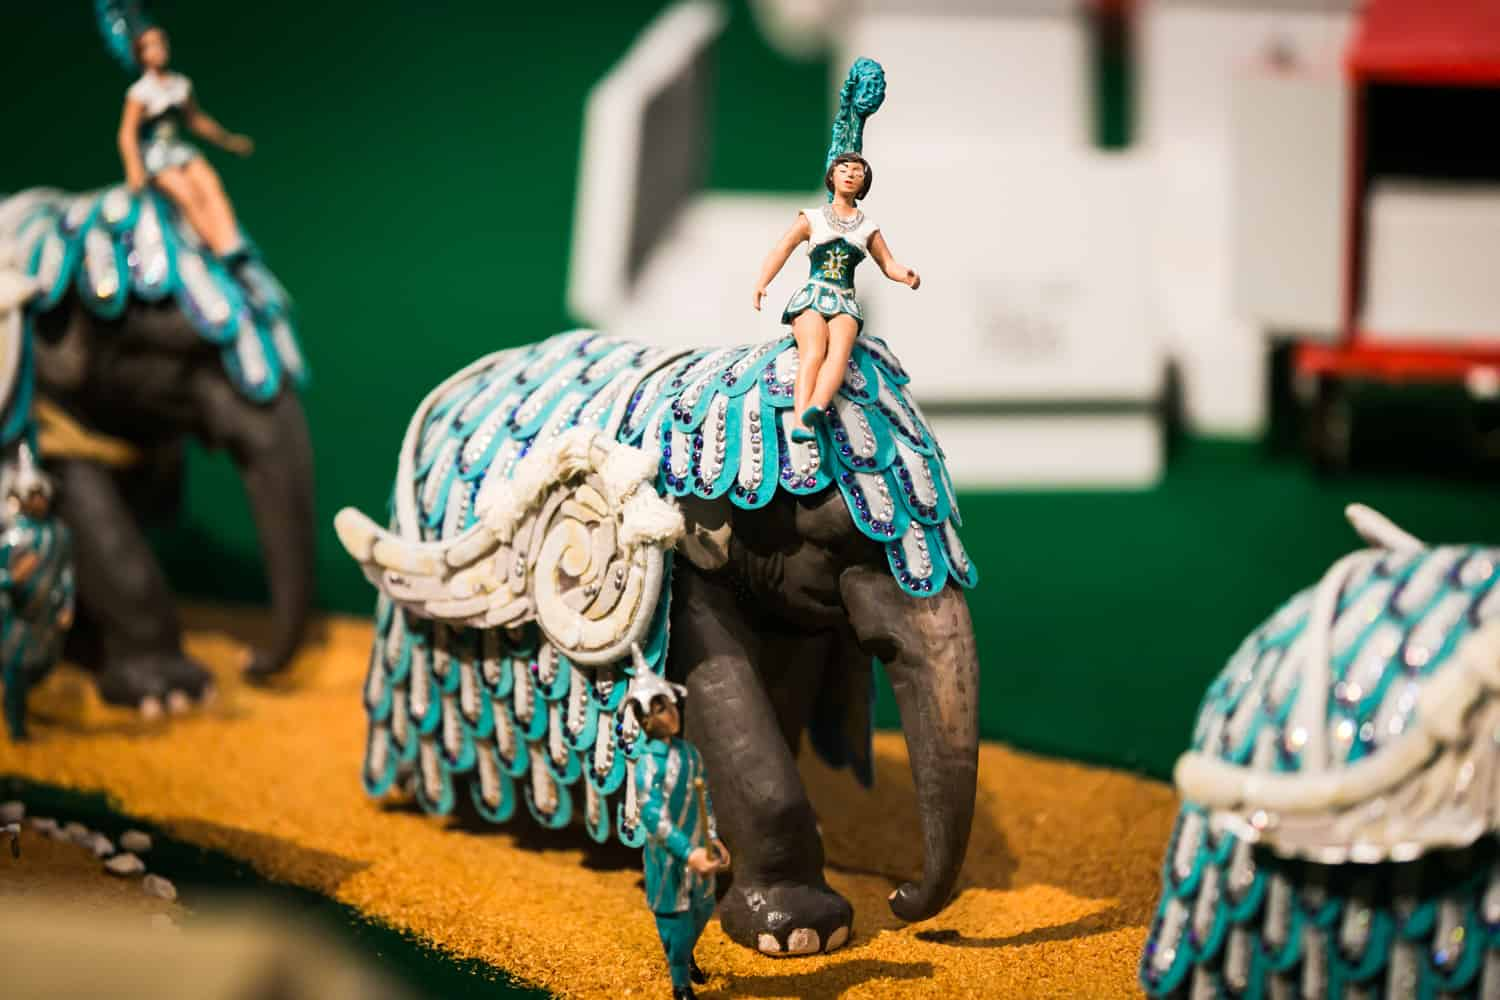 Miniature circus elephant and showgirl in Circus Museum